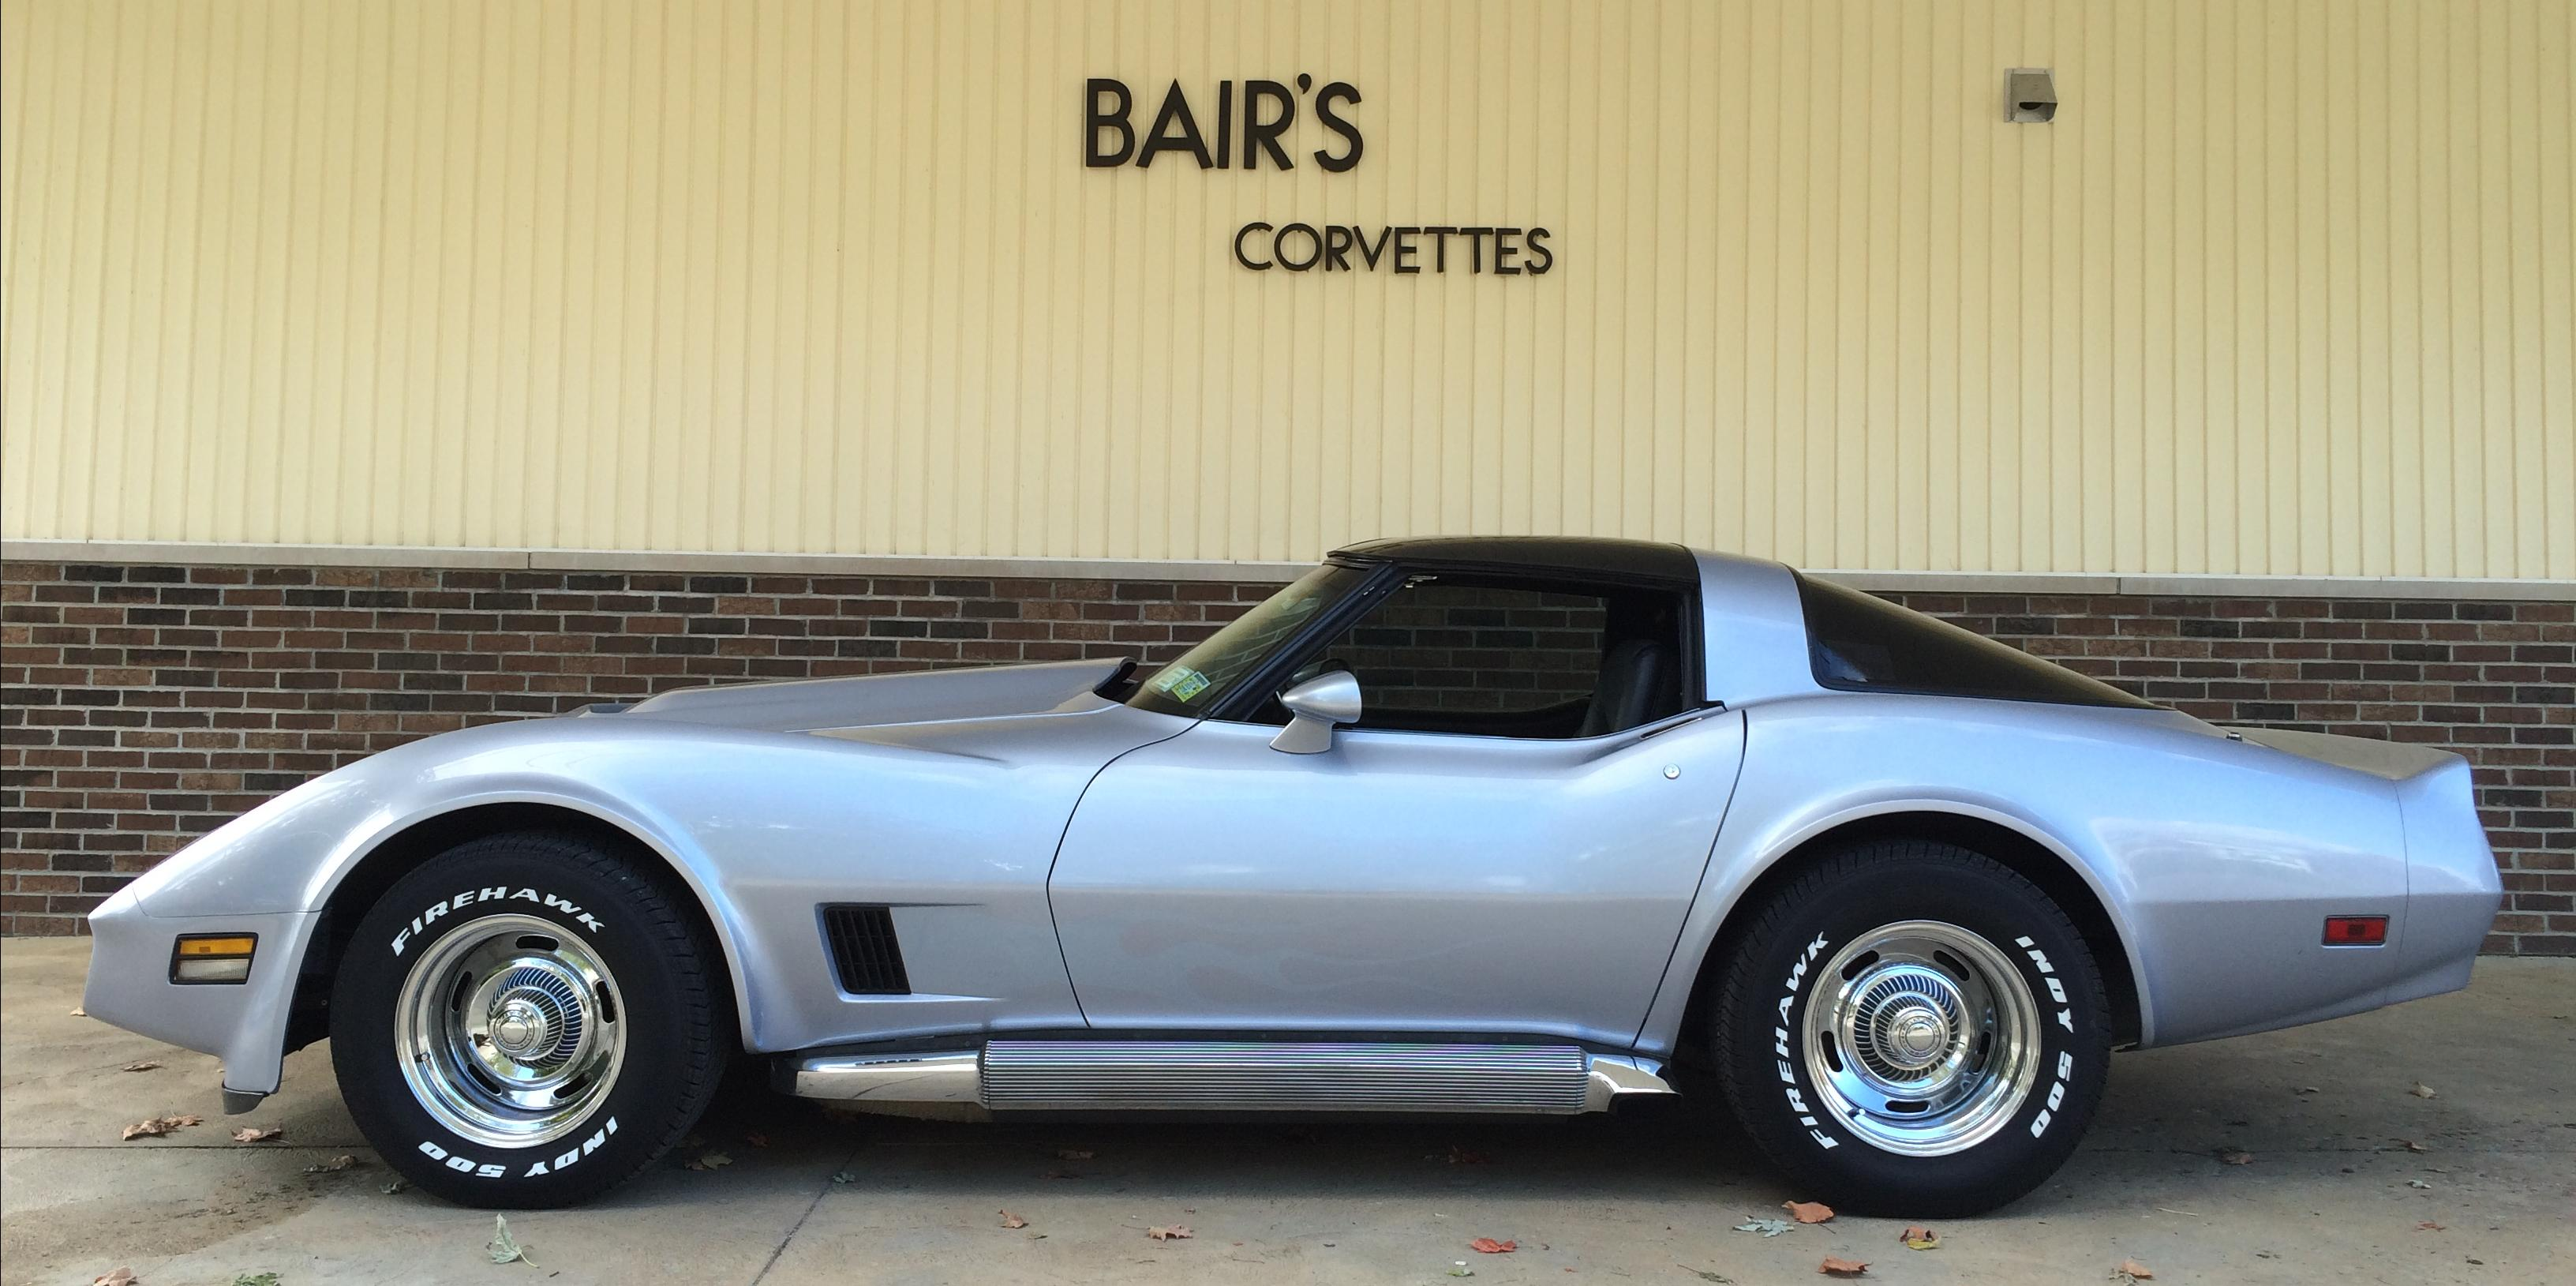 Nissan Of Bedford >> Darryl81 1981 Chevrolet Corvette Specs, Photos, Modification Info at CarDomain